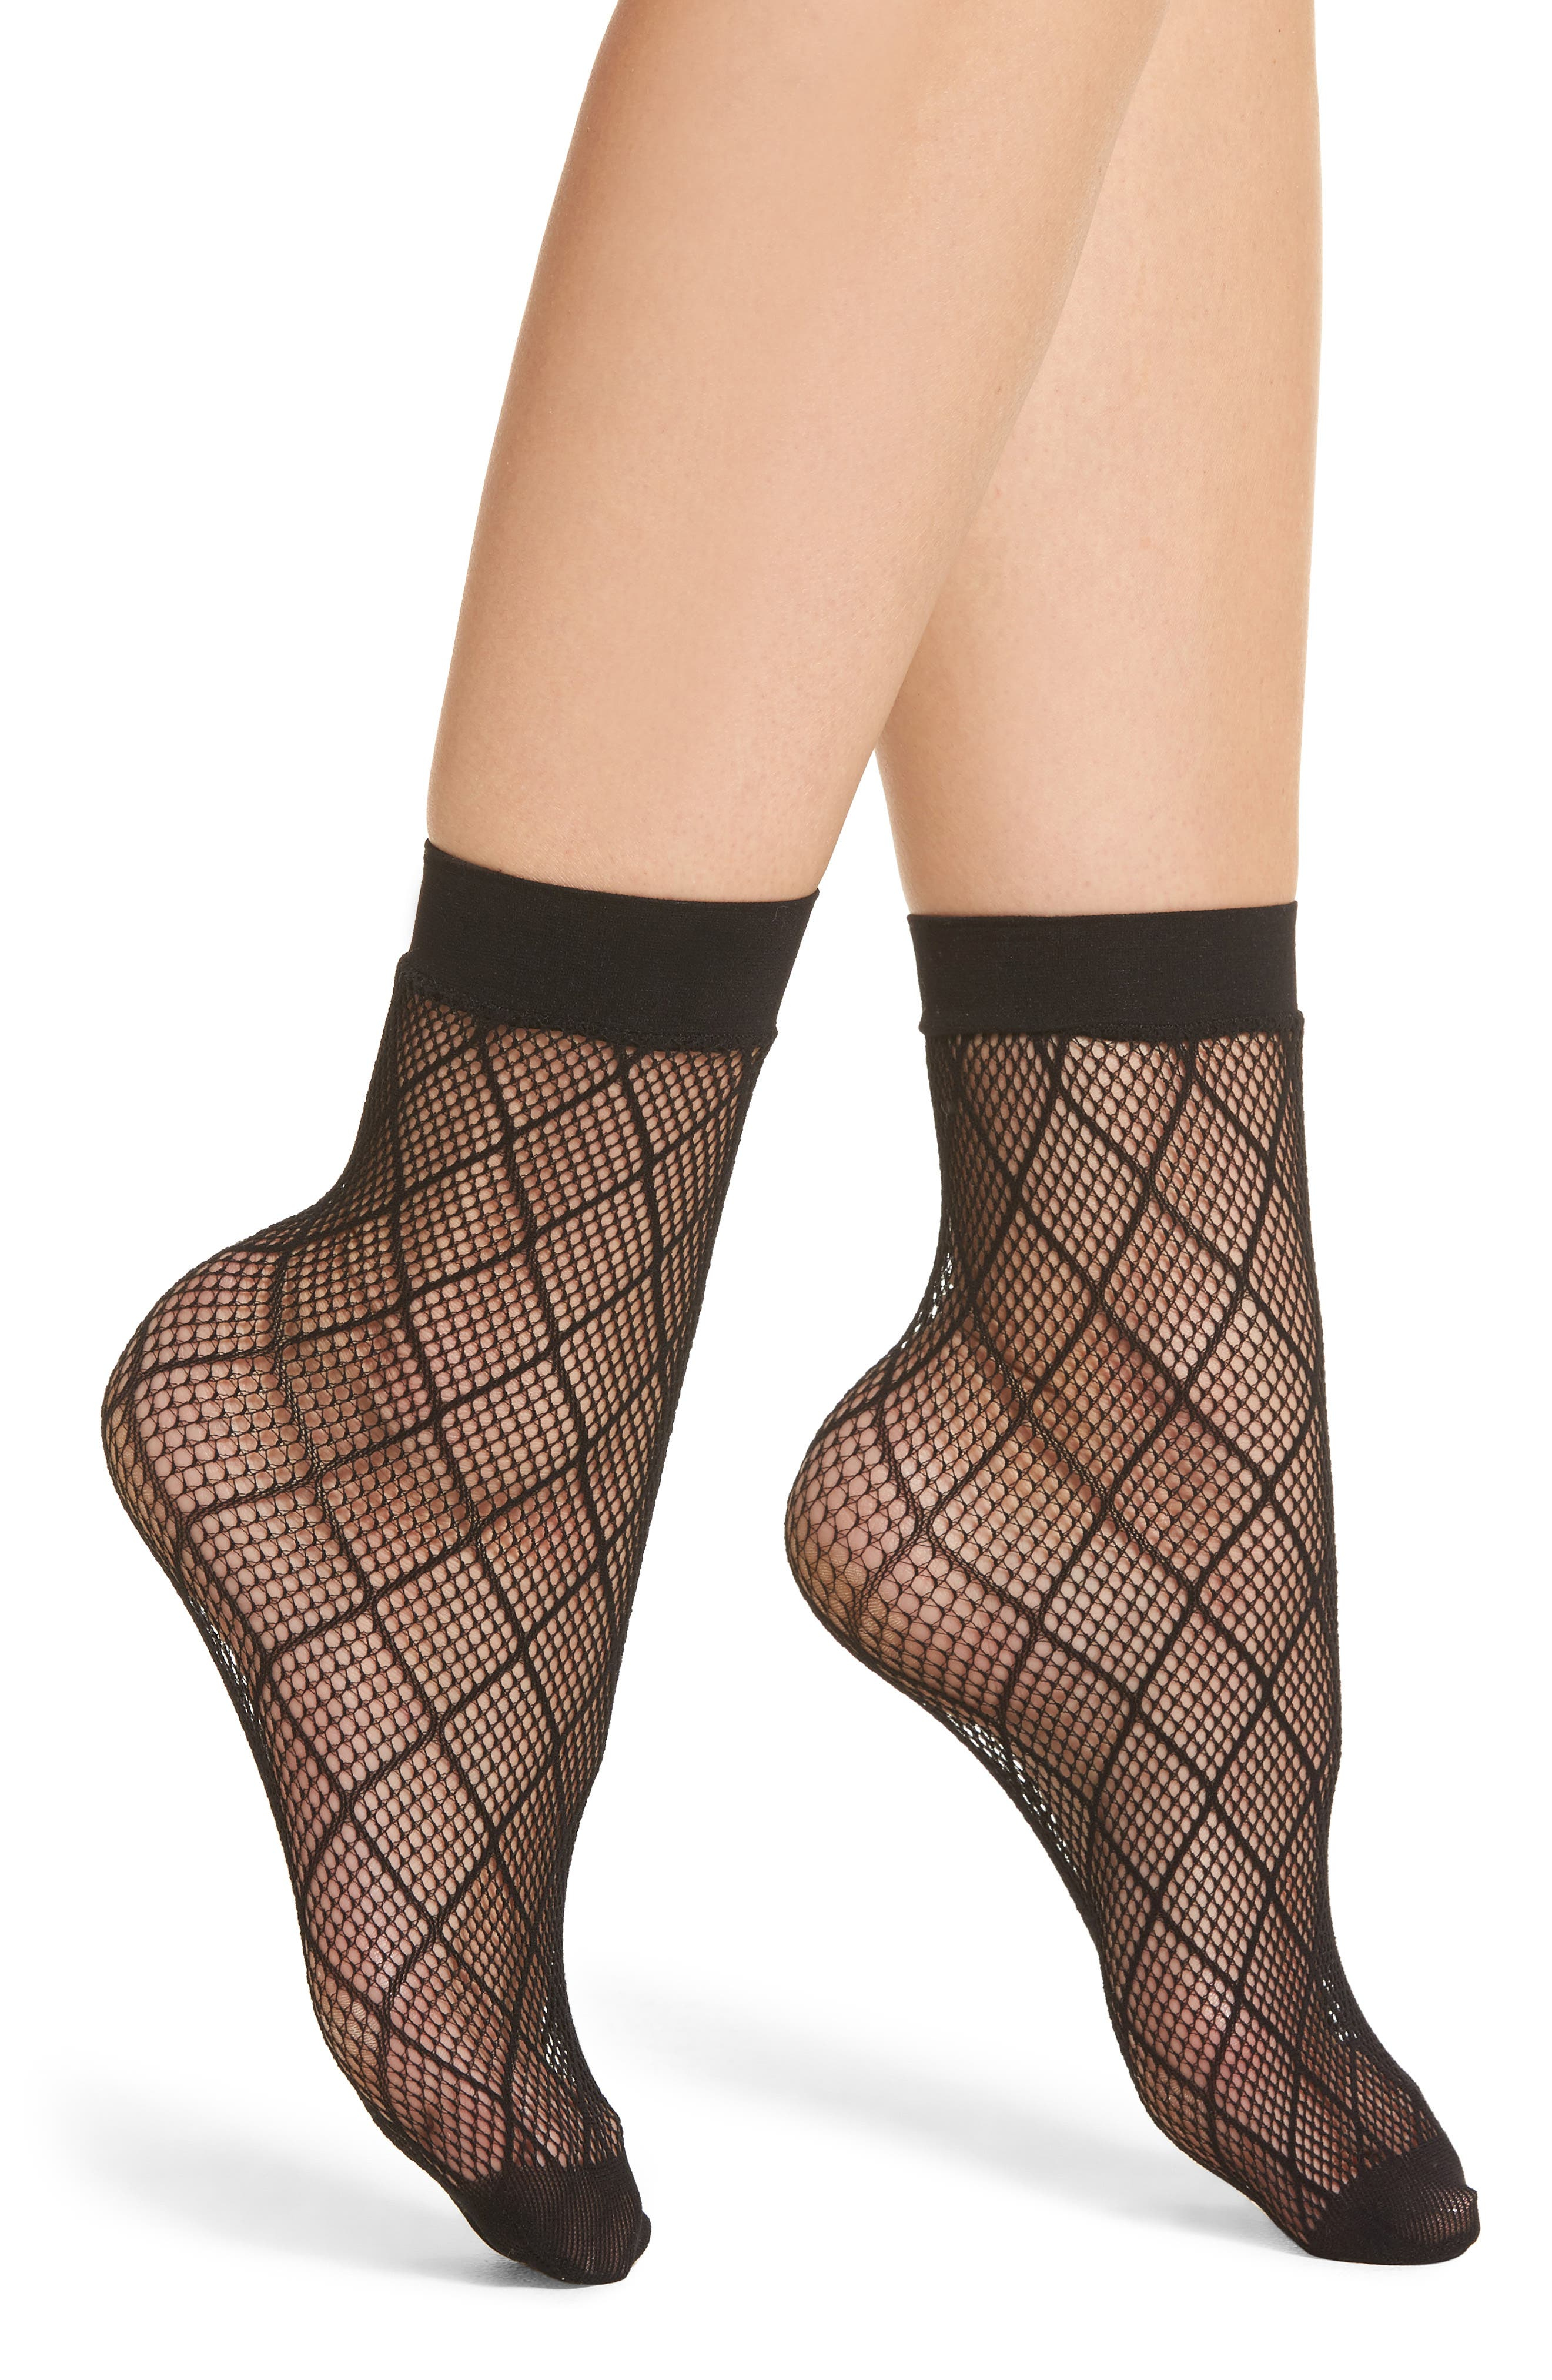 Diamond Fishnet Ankle Socks,                             Main thumbnail 1, color,                             001